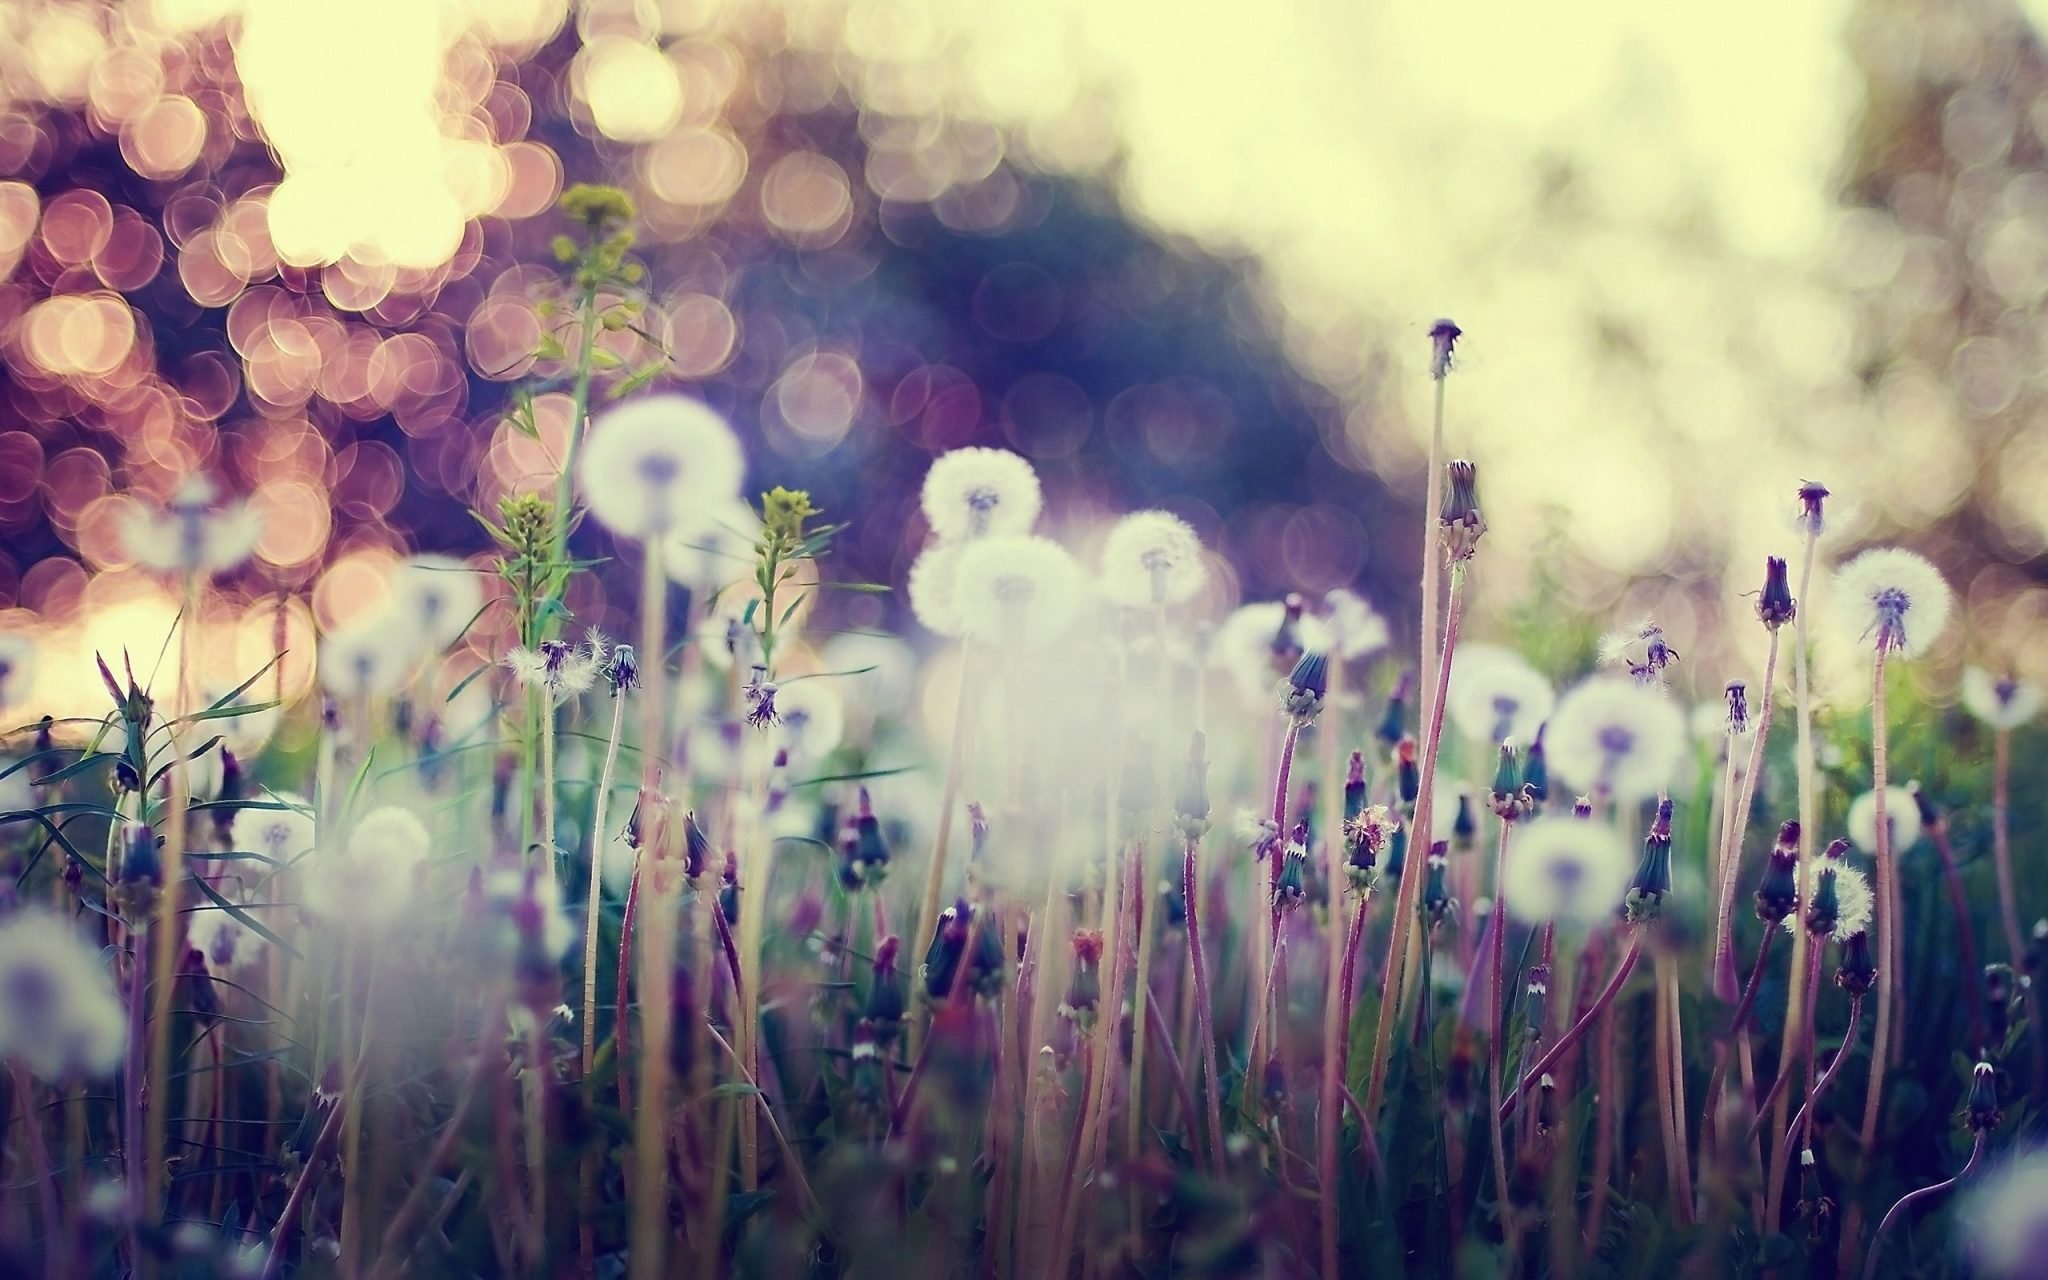 Dandelion-Background-Wallpapers-HD-Free-Download-04